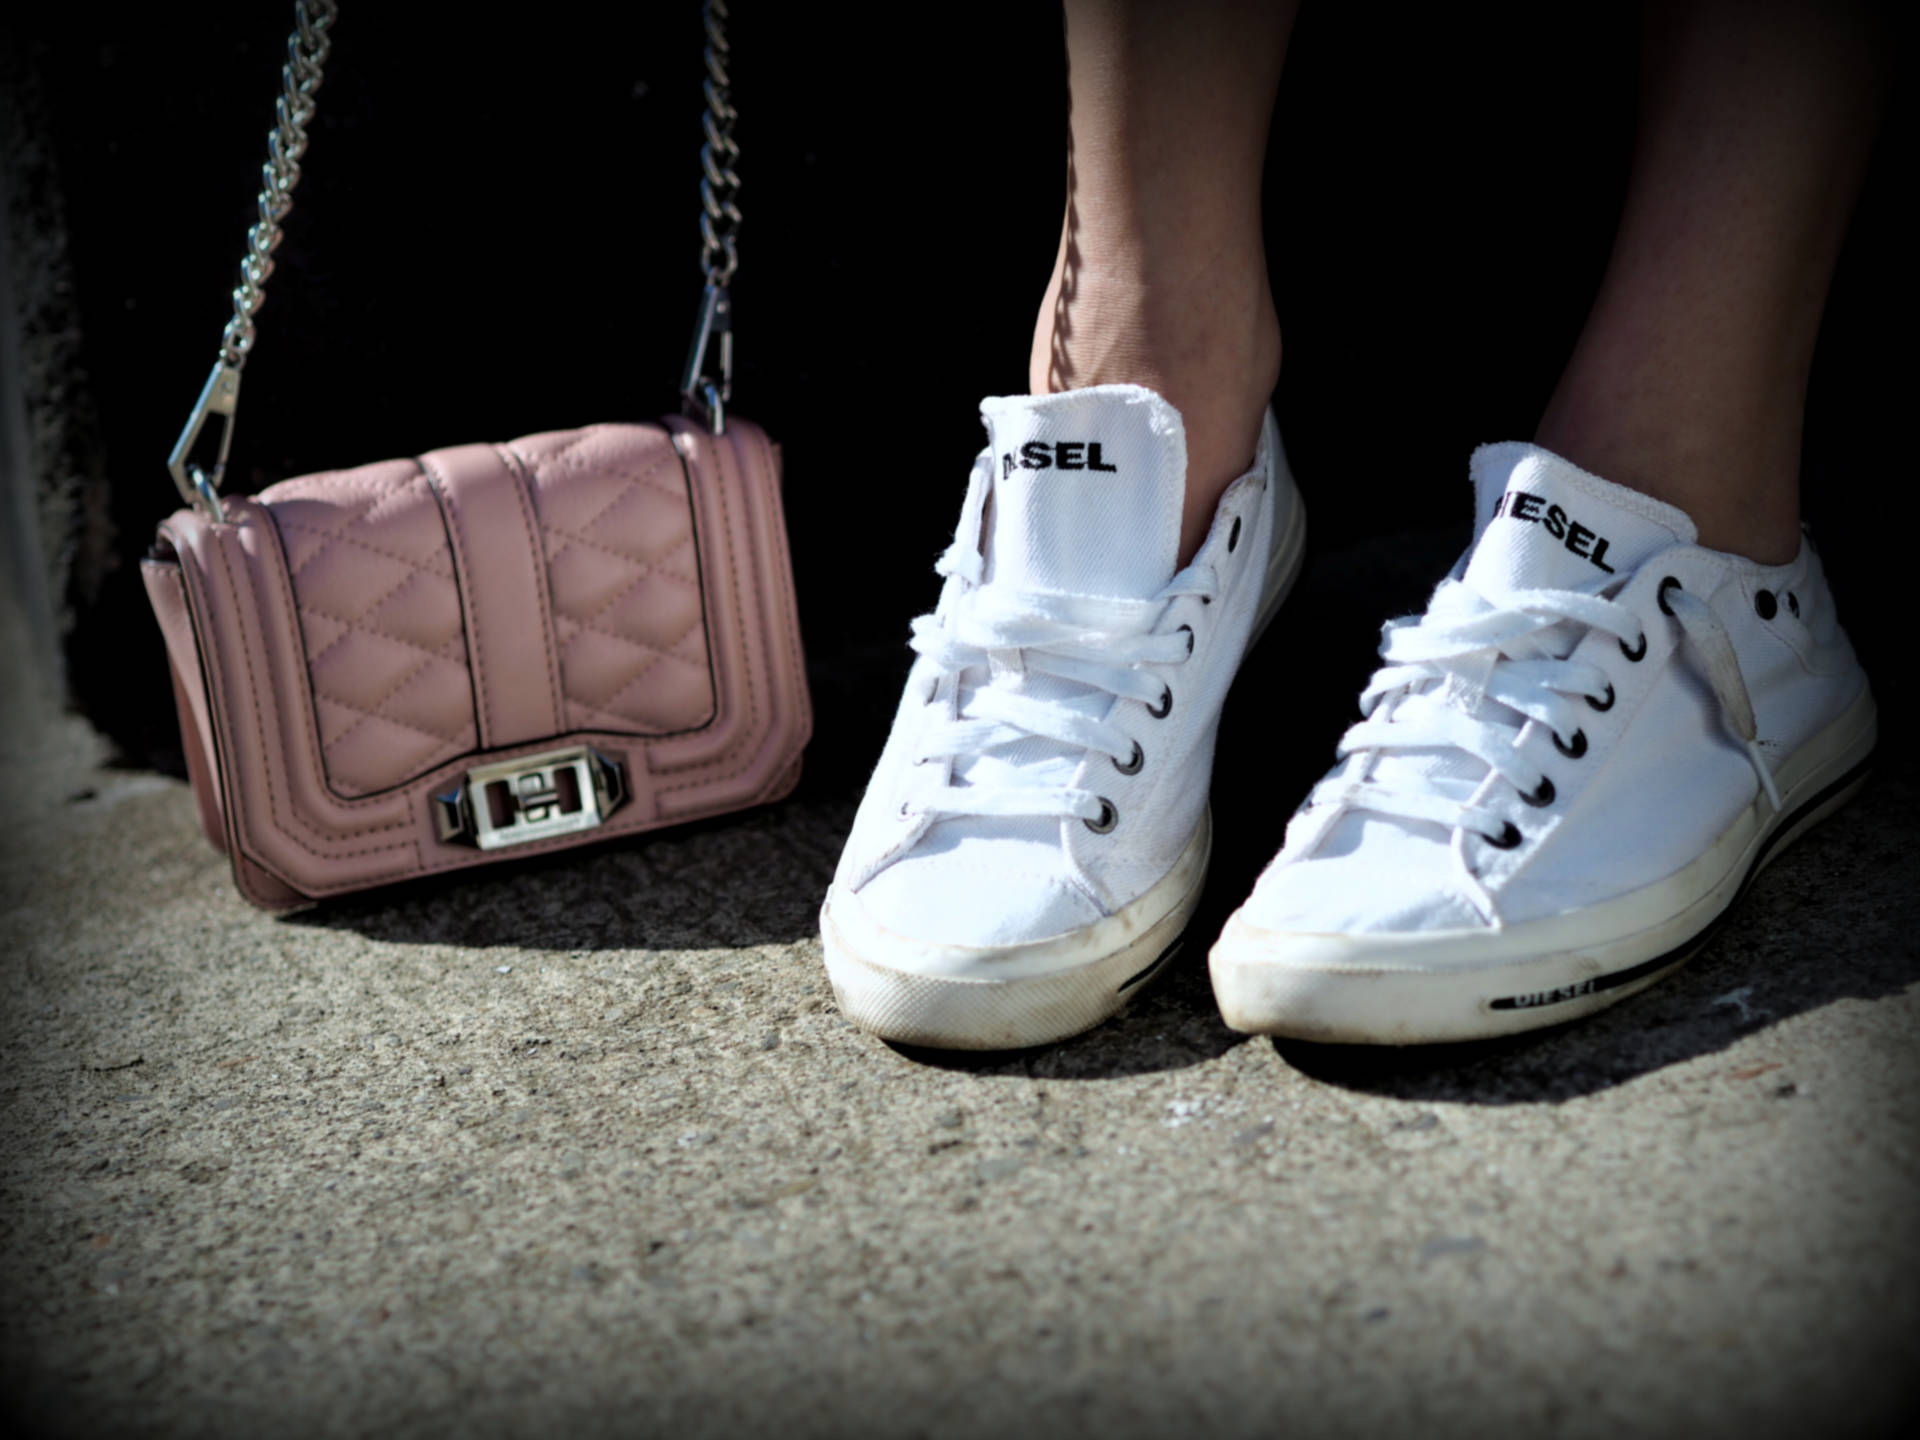 DIESEL SNEAKERS - LAFOTKA FASHION BLOGGER